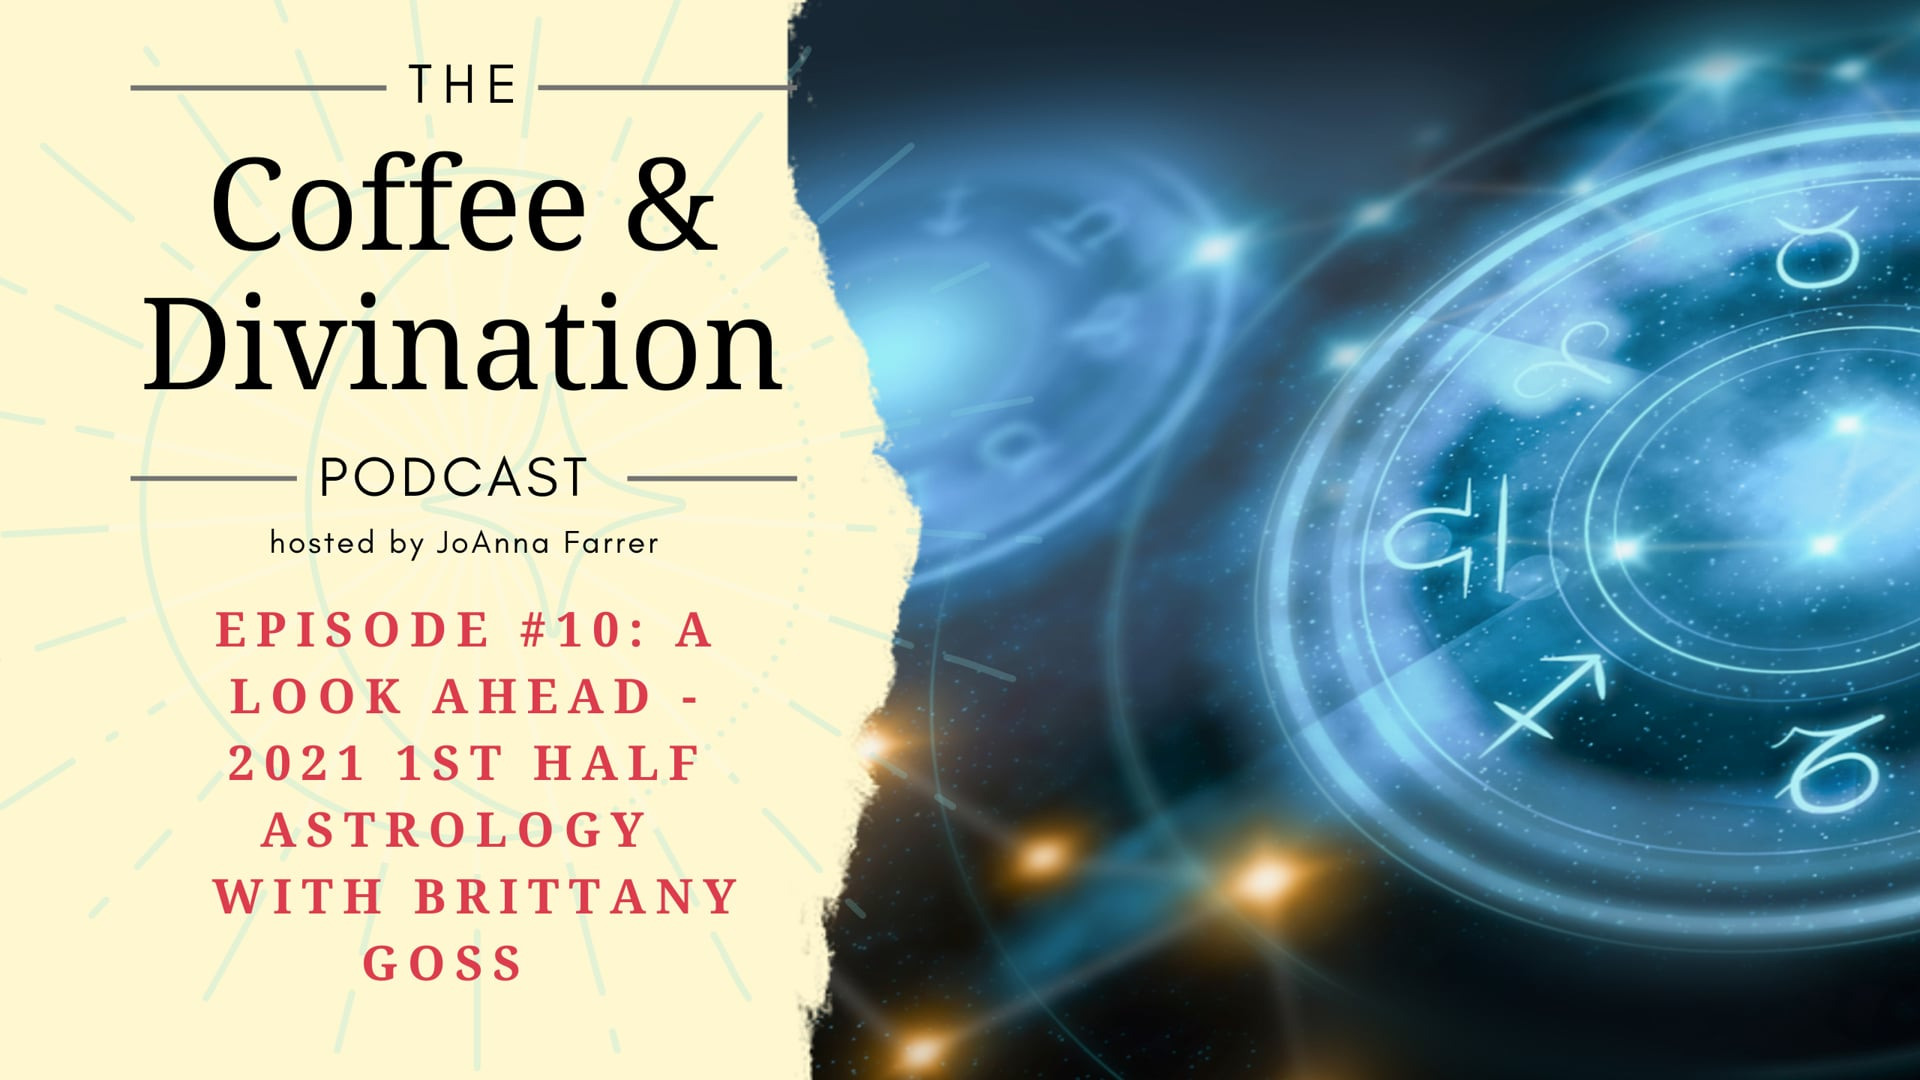 Coffee and Divination - Episode #10: The Astrology of 2021 - 1st half - with Brittany Goss